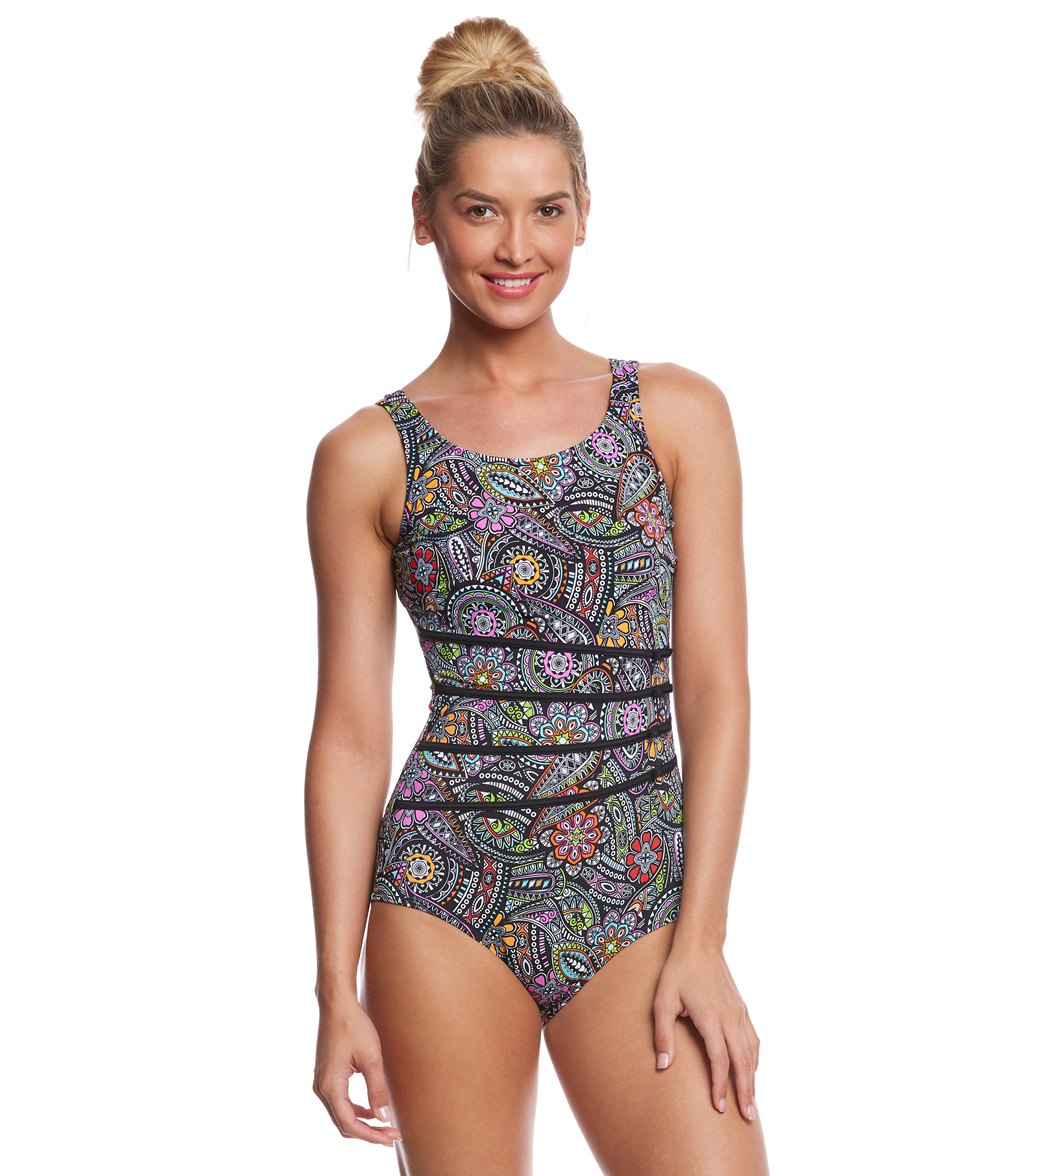 c569cf1039f ... Mastectomy One Piece Swimsuit. Play Video. MODEL MEASUREMENTS